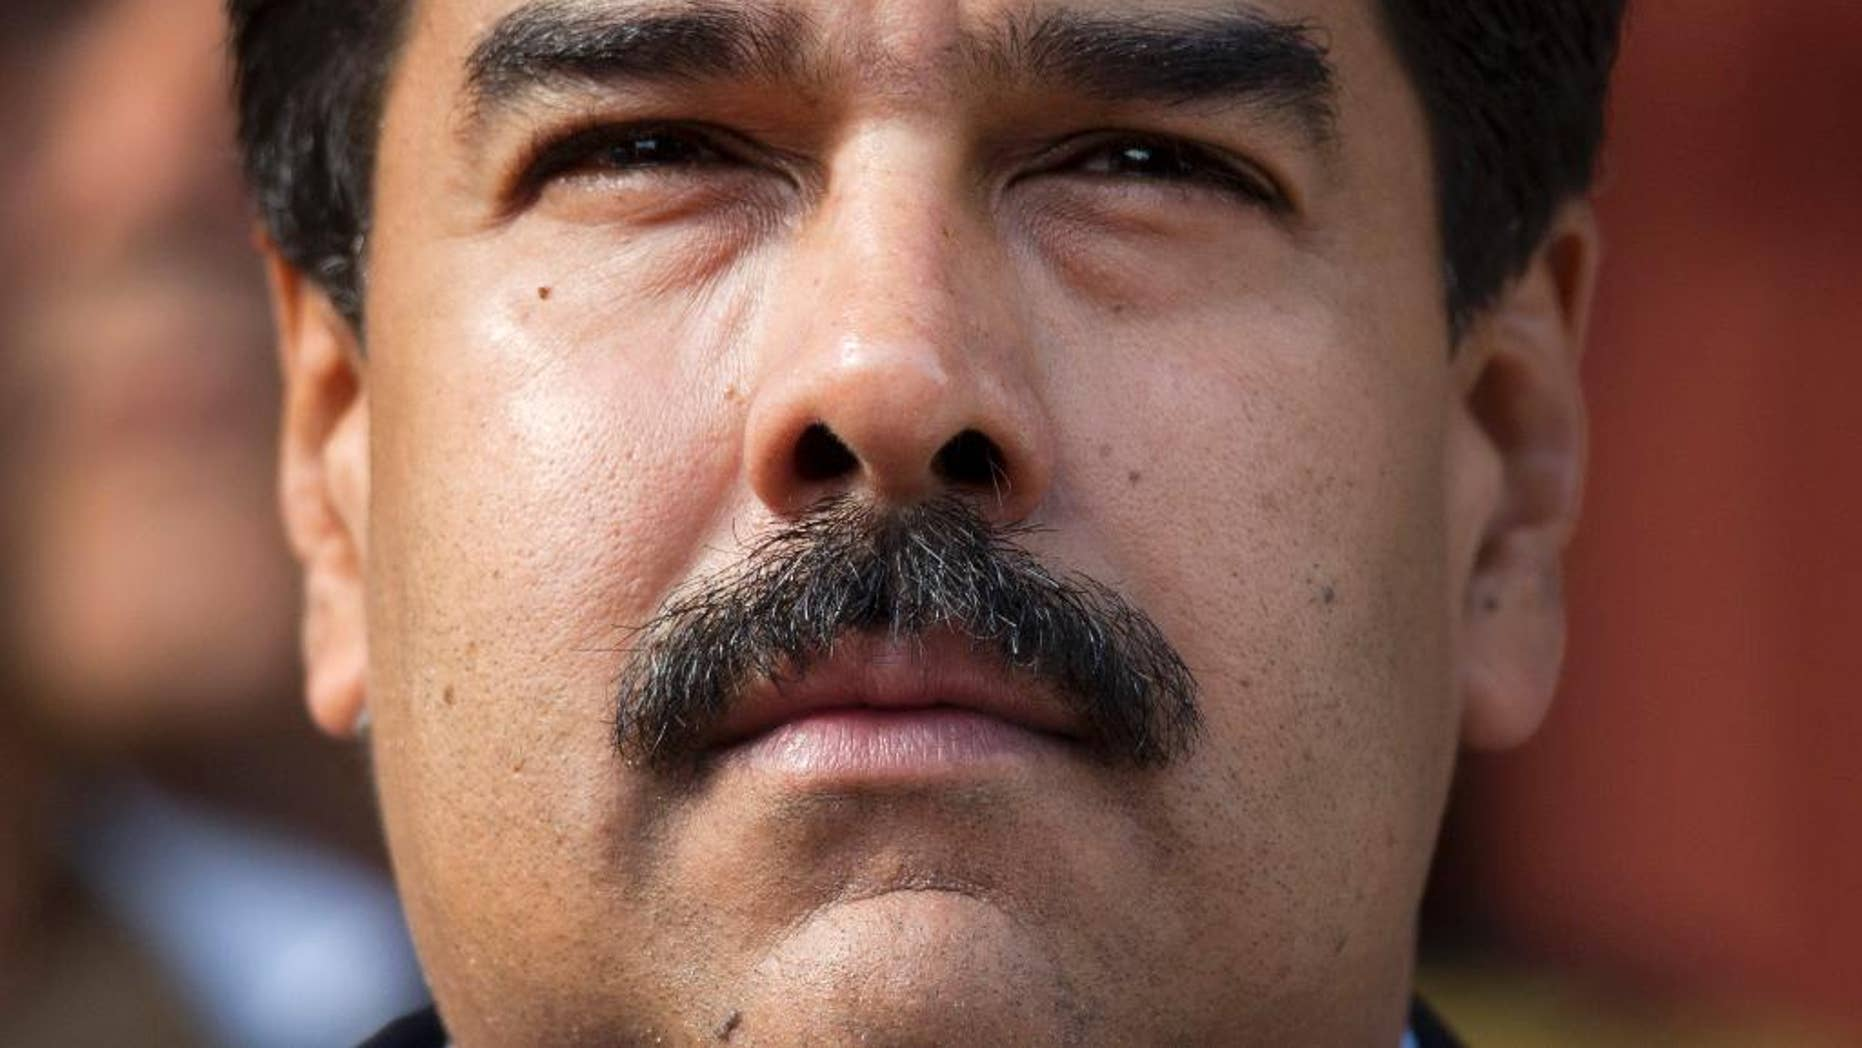 FILE - I this March 17, 2015, file photo, Venezuela's President Nicolas Maduro listens to the playing of national hymns as he welcomes regional leaders to Miraflores presidential palace for an emergency ALBA meeting in Caracas, Venezuela. On Thursday, Oct. 5, 2015, Maduro repeated a promise to shave off his trademark moustache if his government doesn't meet a year-end goal of handing over its 1 millionth public housing unit to a family. (AP Photo/Ariana Cubillos, File)